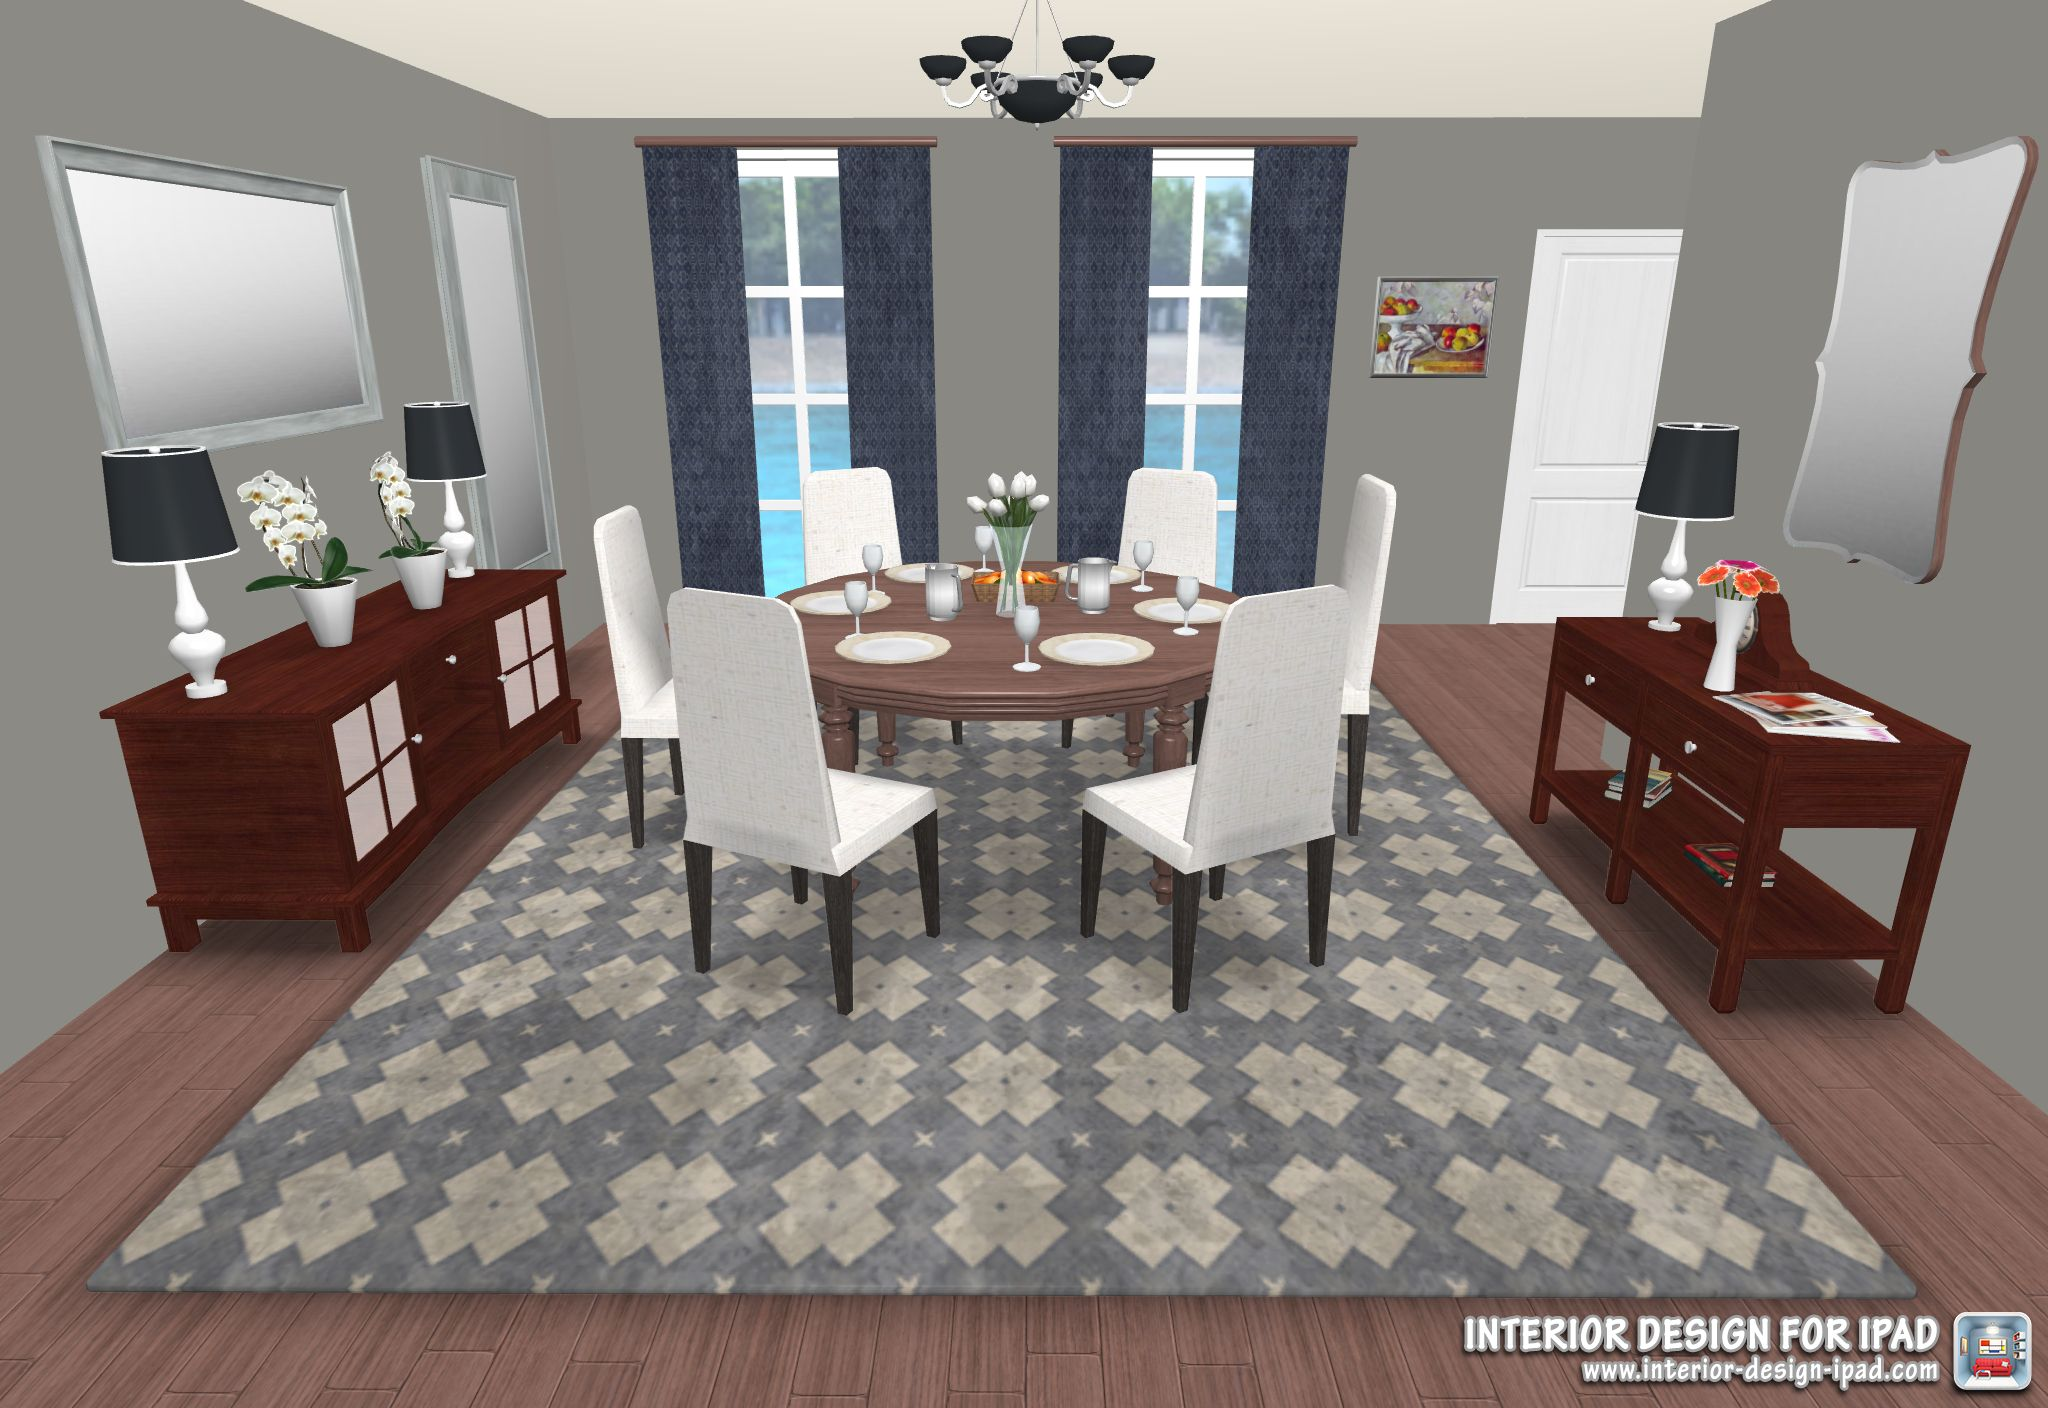 stunning dining room created with interior design app for ipad